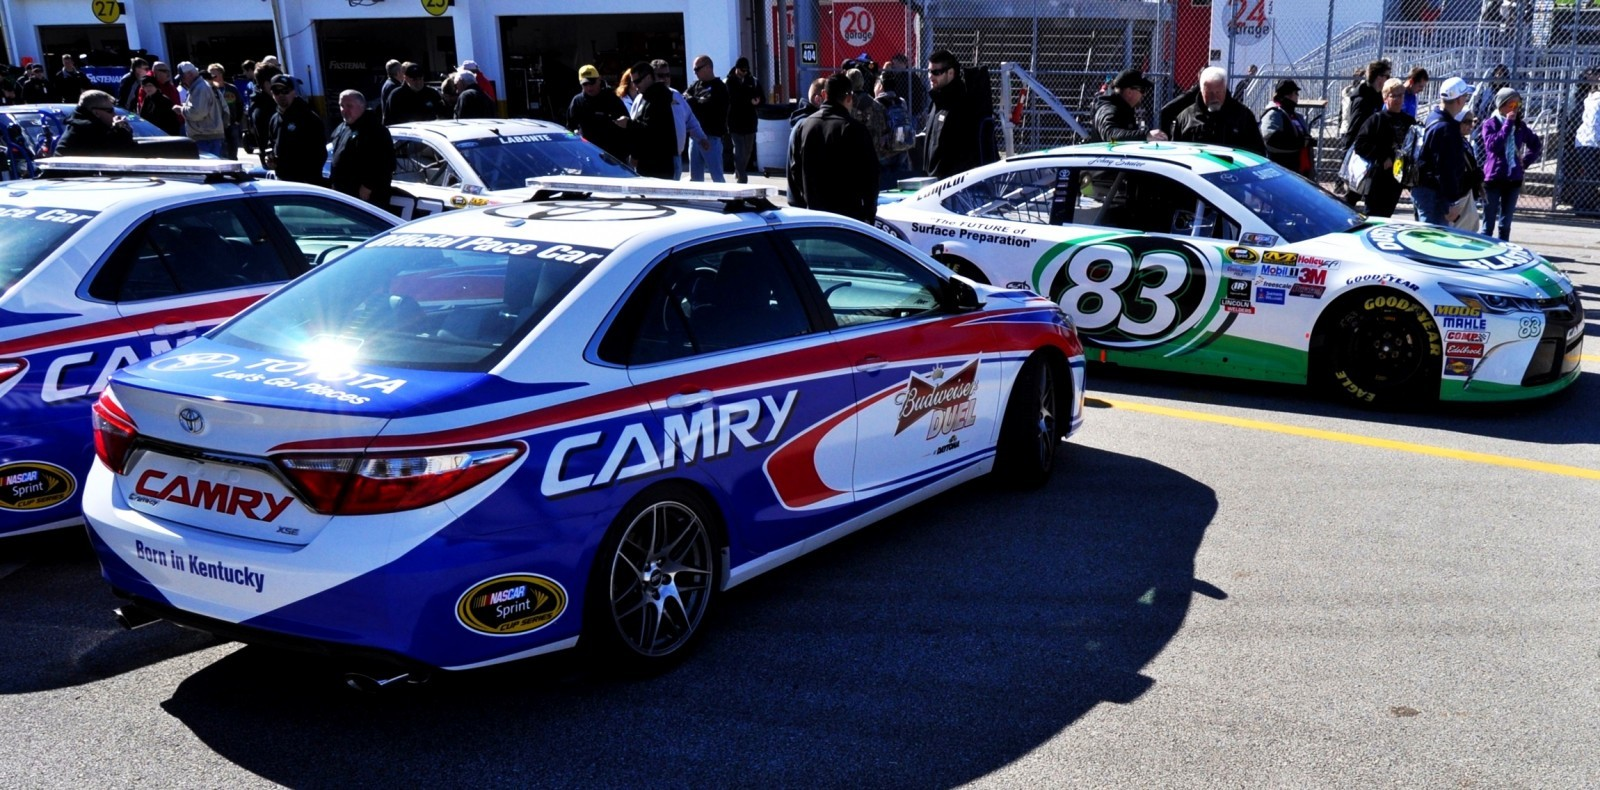 2015 Toyota Camry - DAYTONA 500 Official Pace Car 22